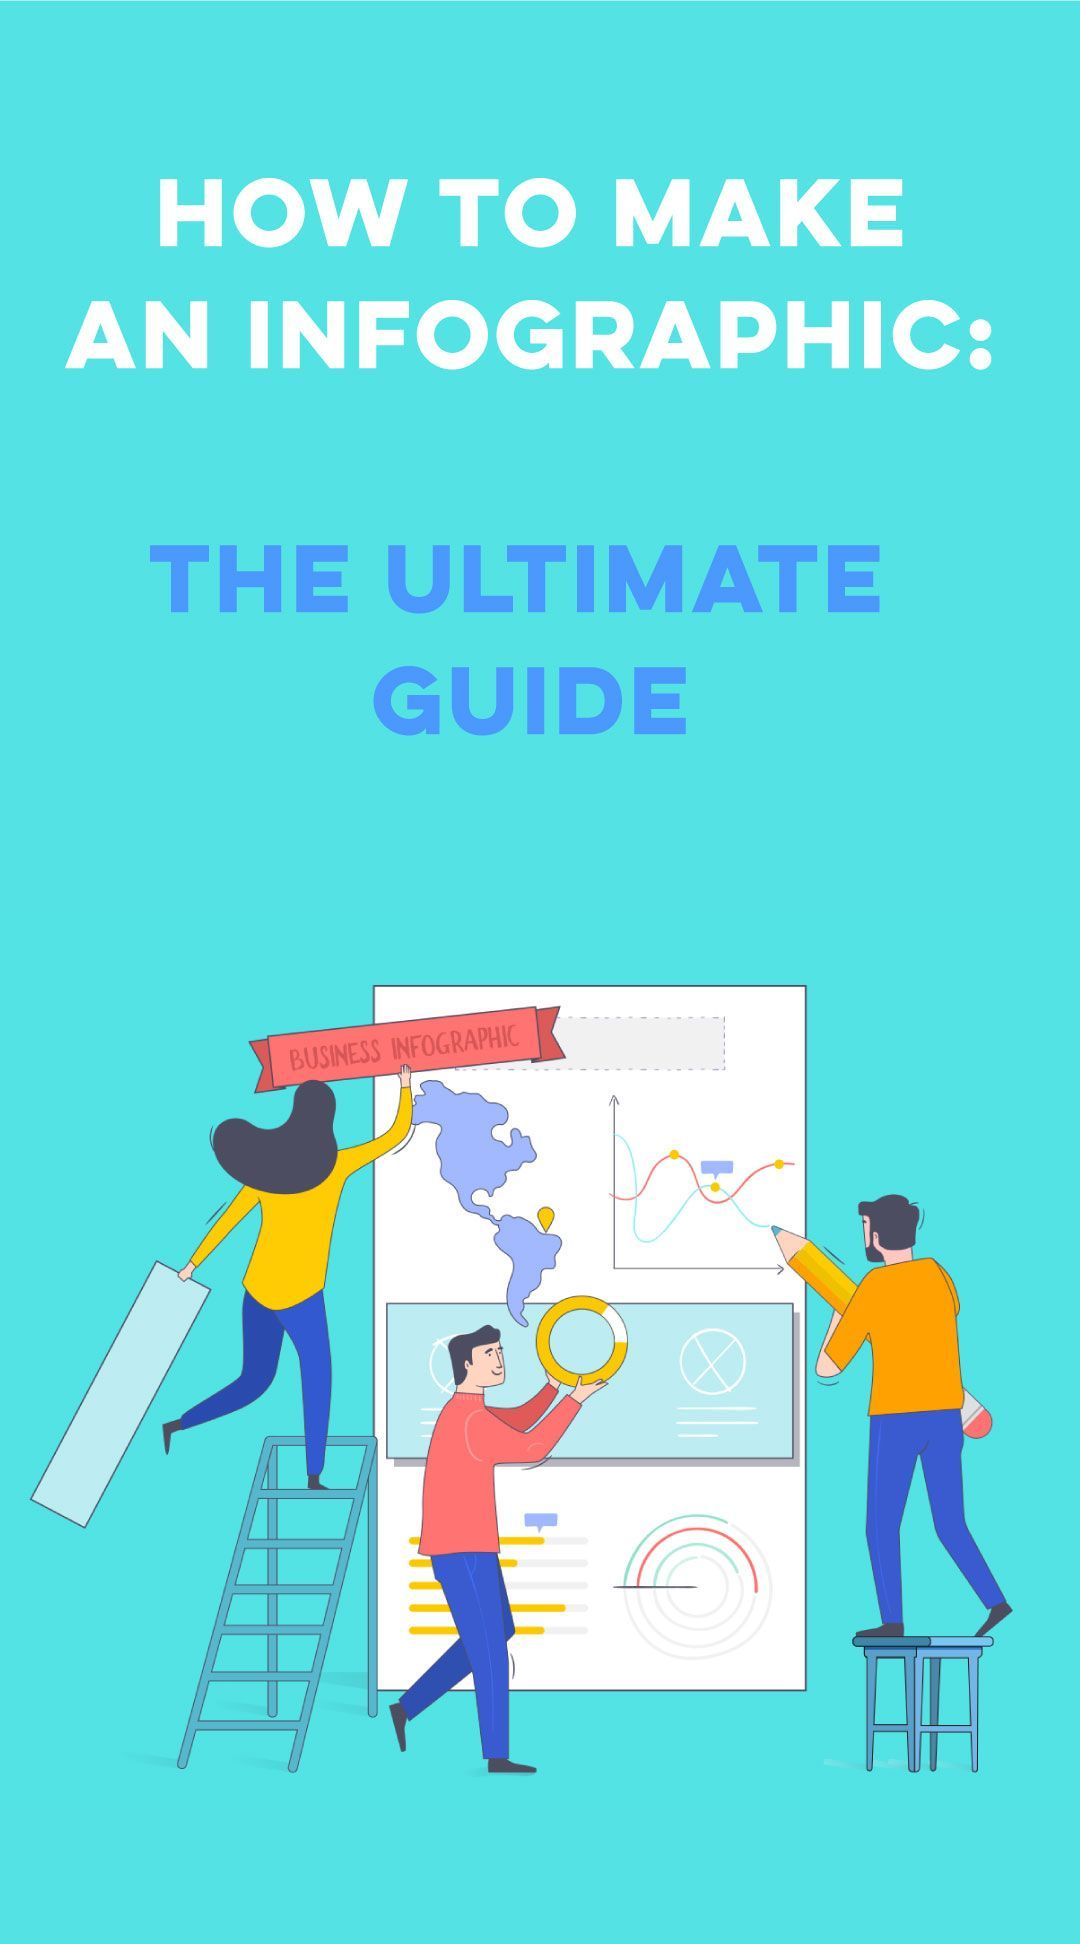 How to Make an Infographic In 9 Simple Steps [2021 Guide